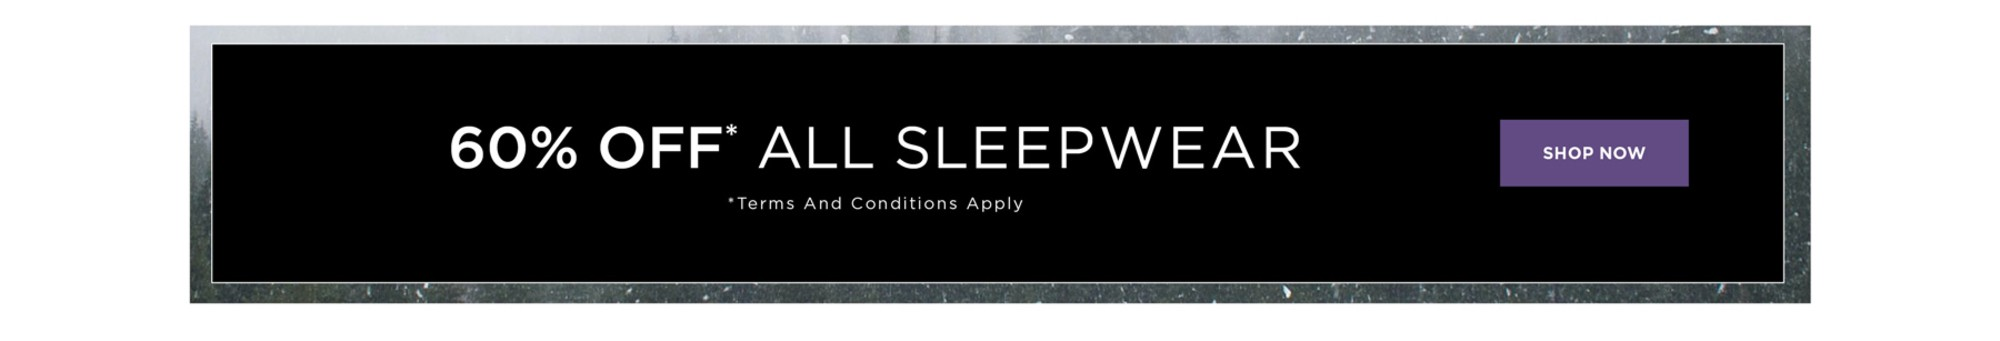 60% Off* All Sleepwear - *See Terms & Conditions for full details - prices as marked - SHOP NOW